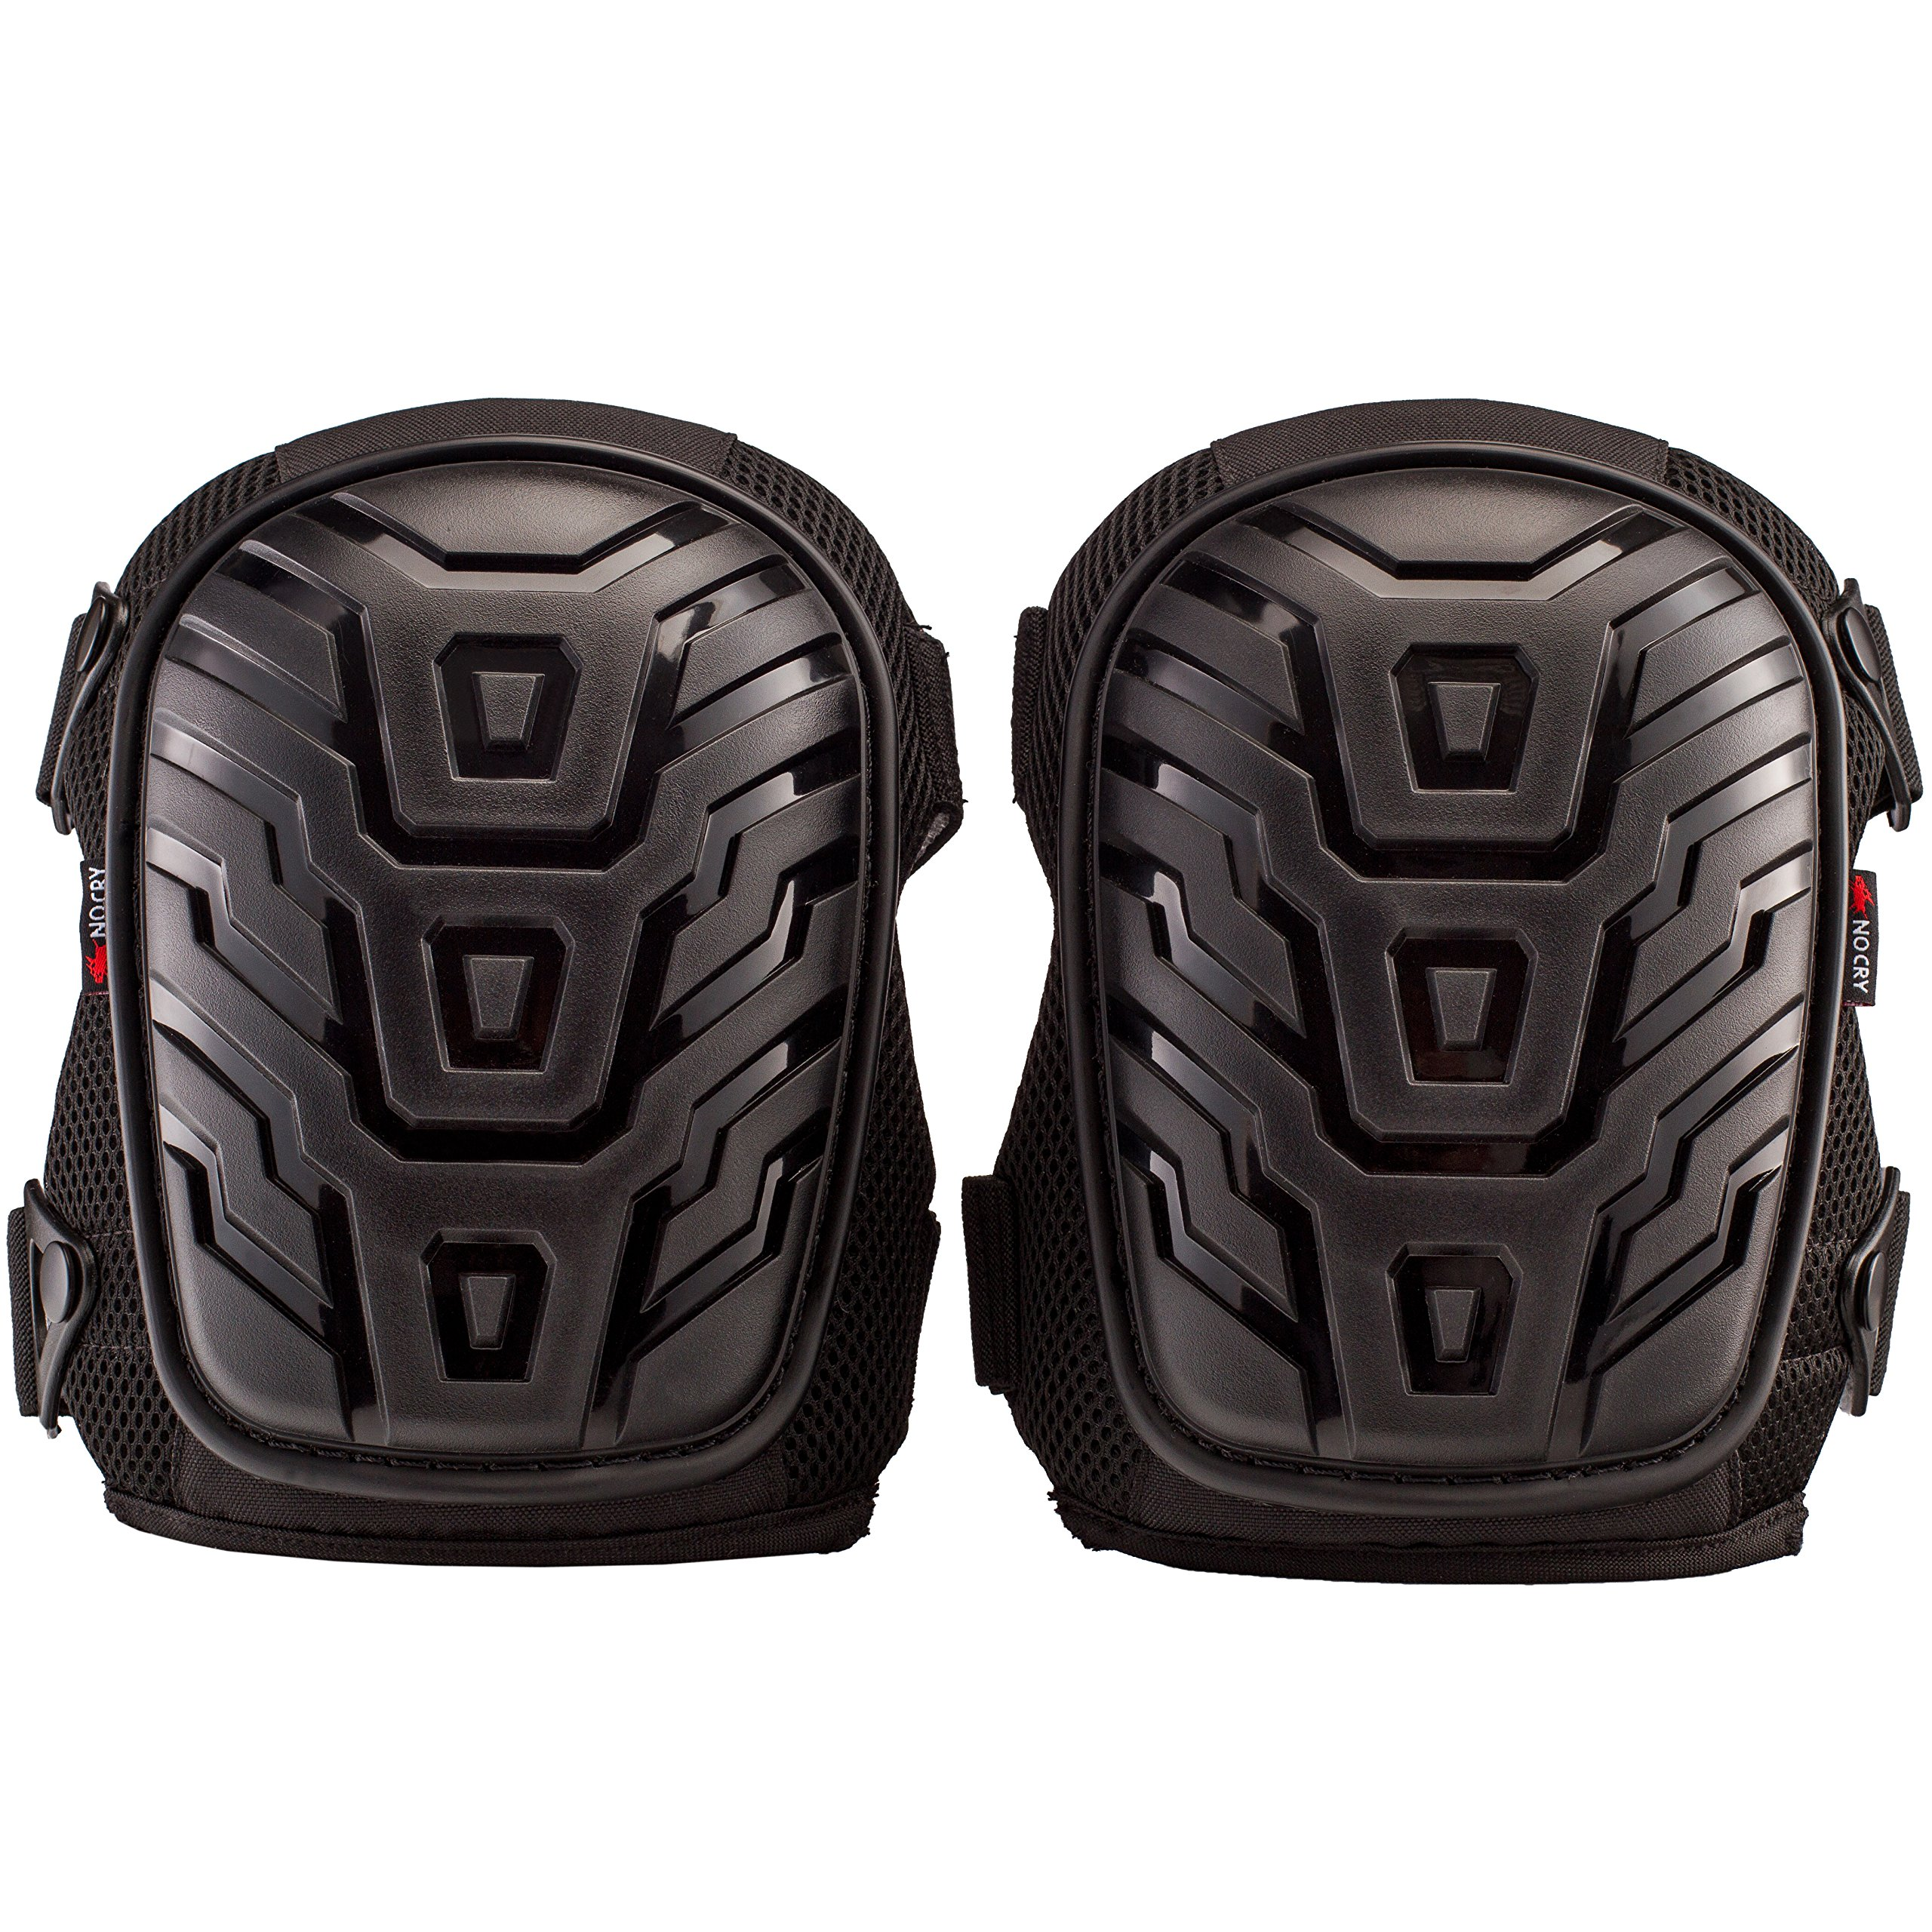 NoCry Professional Knee Pads with Heavy Duty Foam Padding and Comfortable Gel Cushion, Strong Double Straps and Adjustable Easy-Fix Clips by NoCry (Image #8)